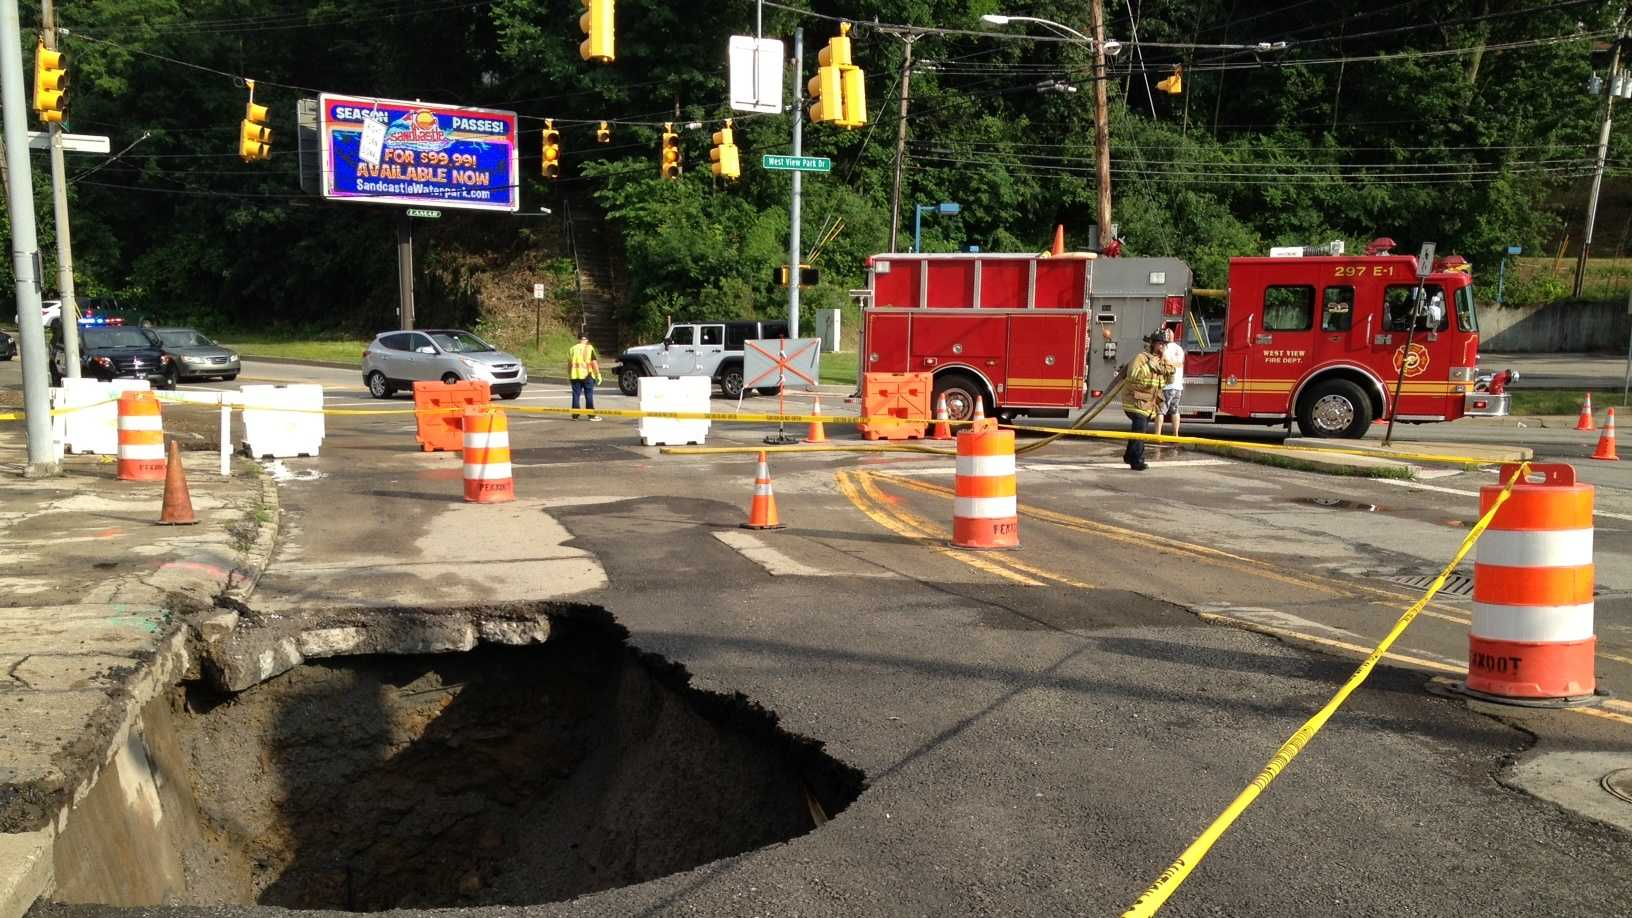 A large sinkhole has opened in a lane of traffic on Perry Highway in West View.